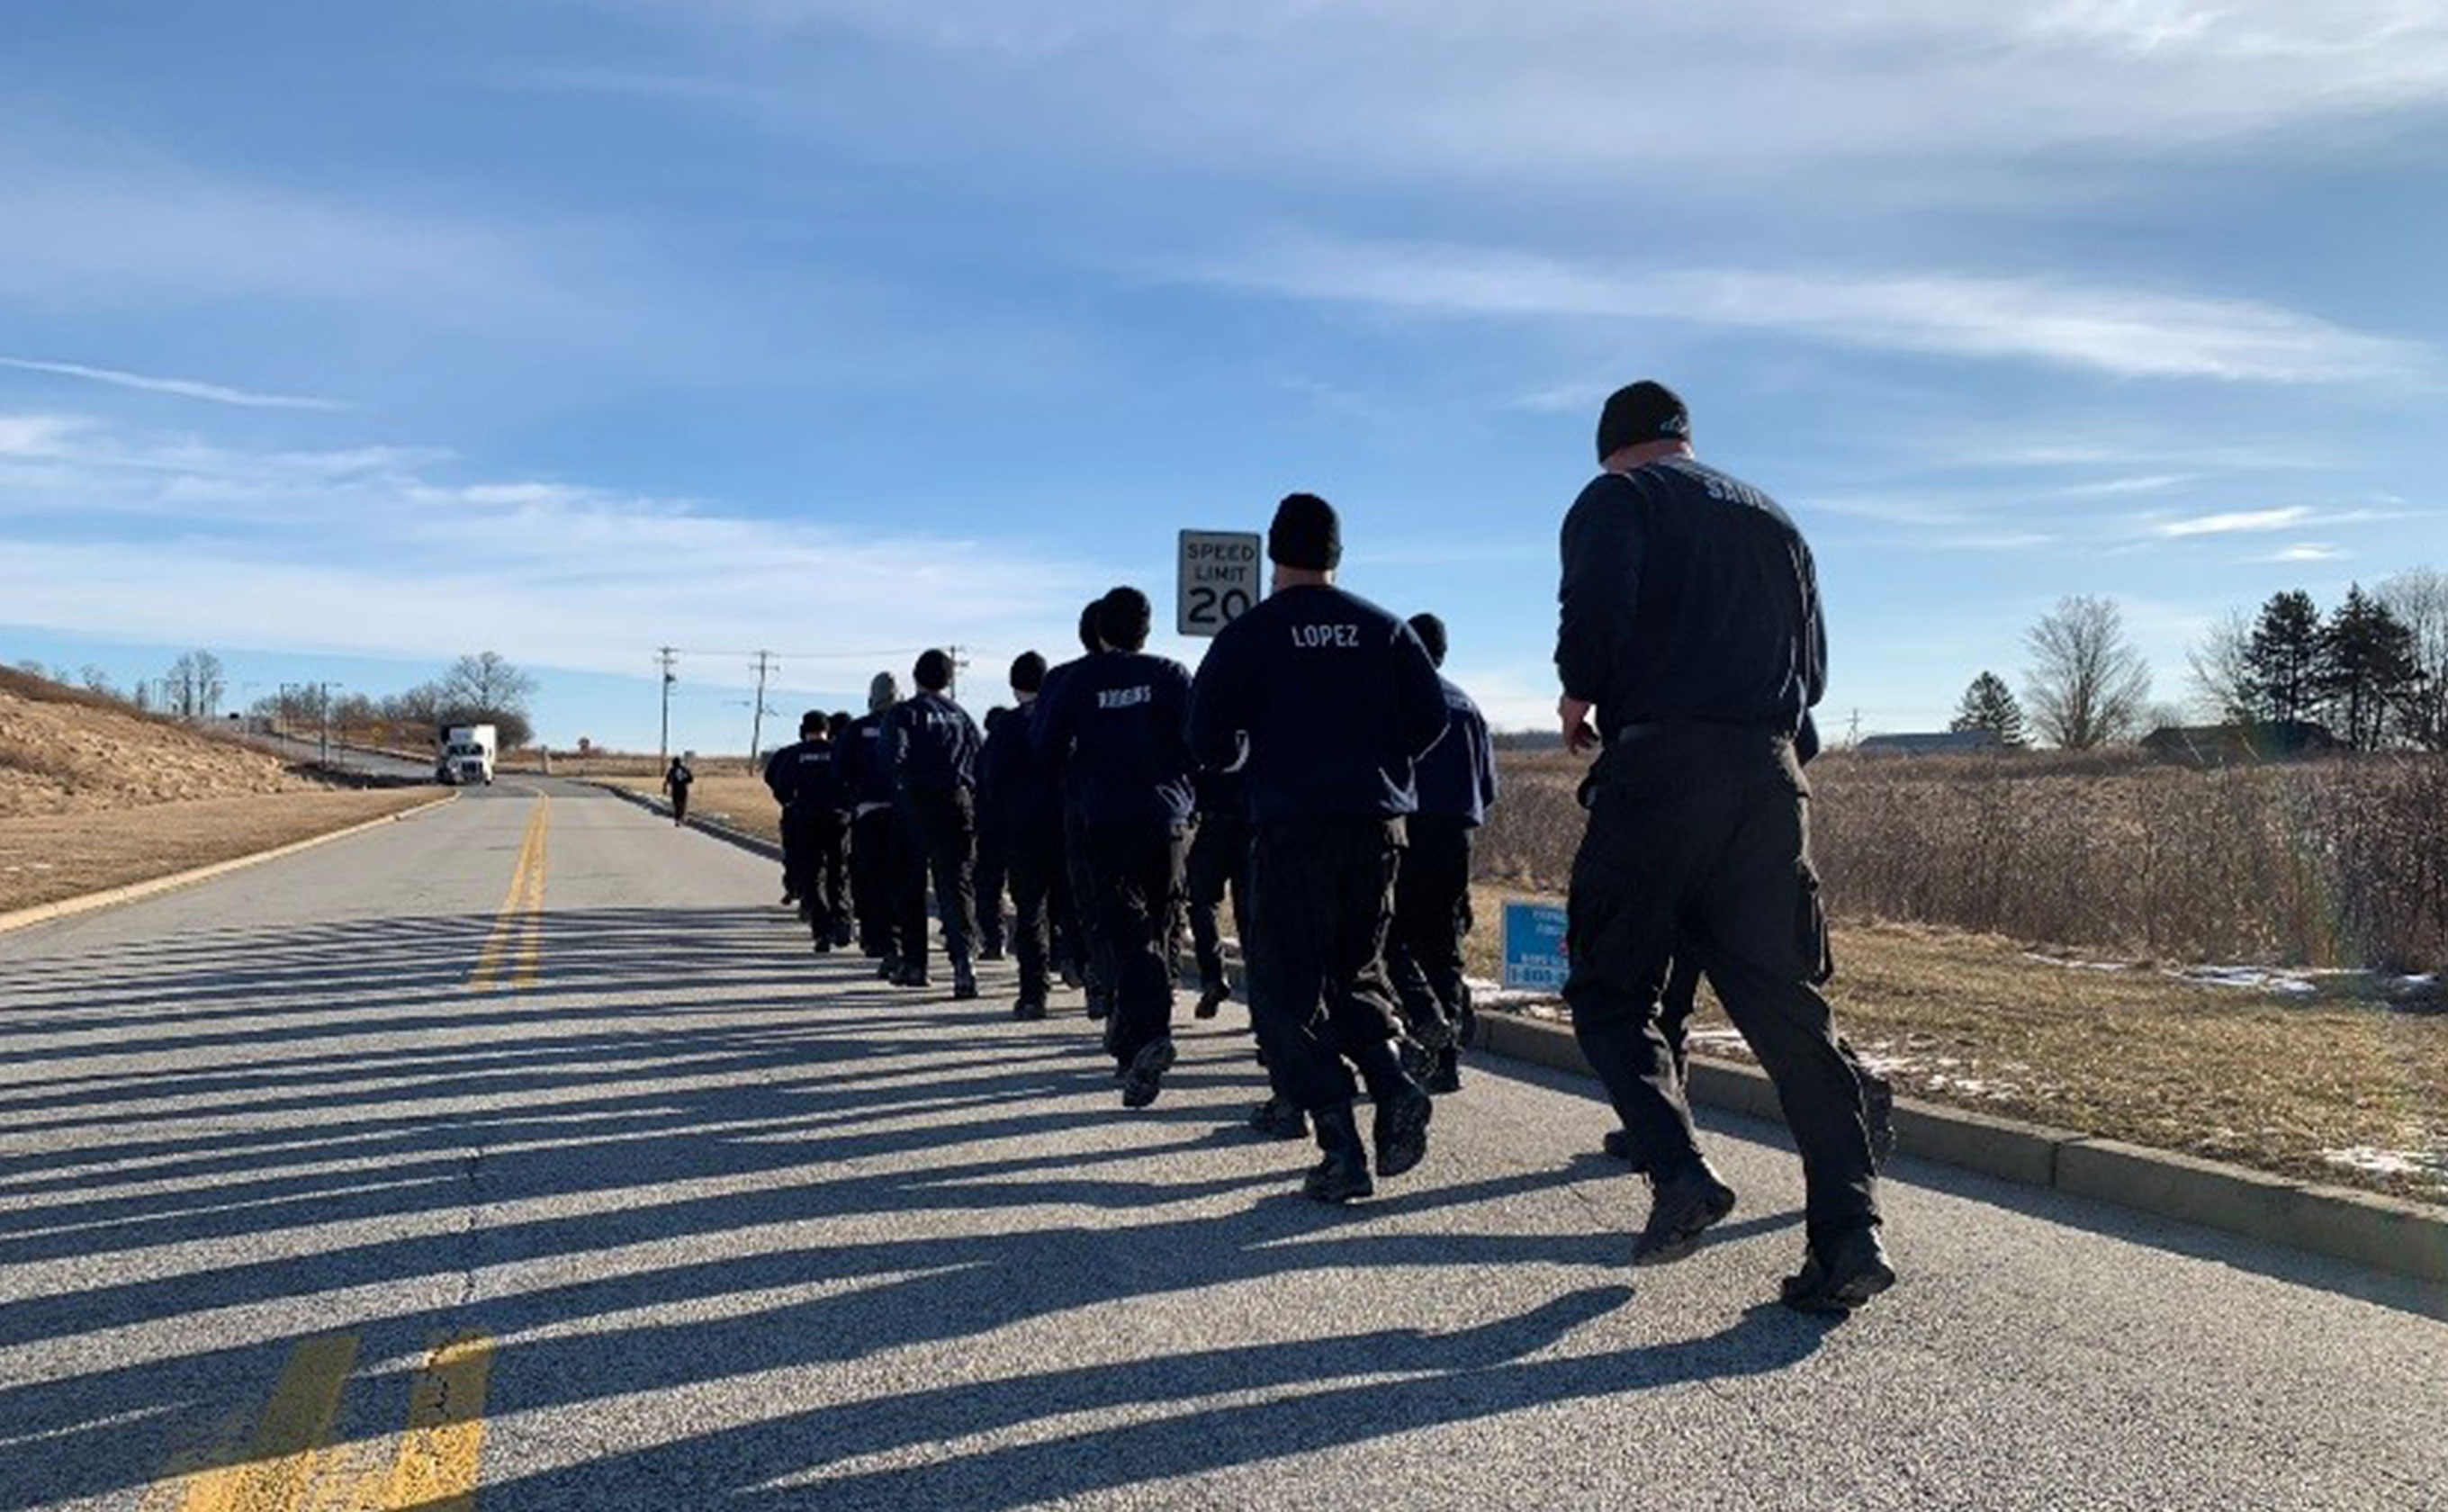 Officers jogging on the road